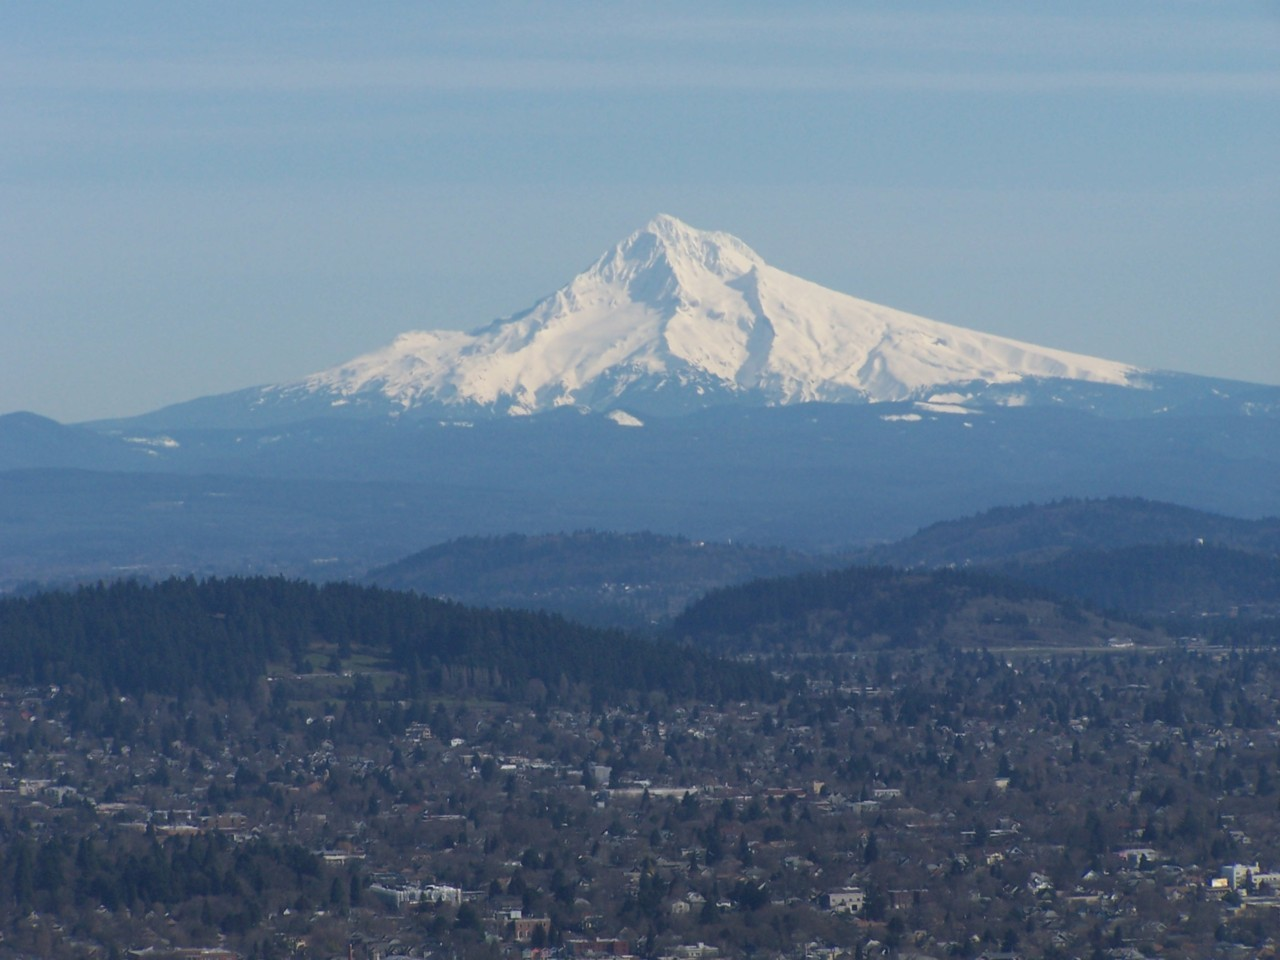 Mt. Hood in February, with East Portland and I-205 in the foreground.